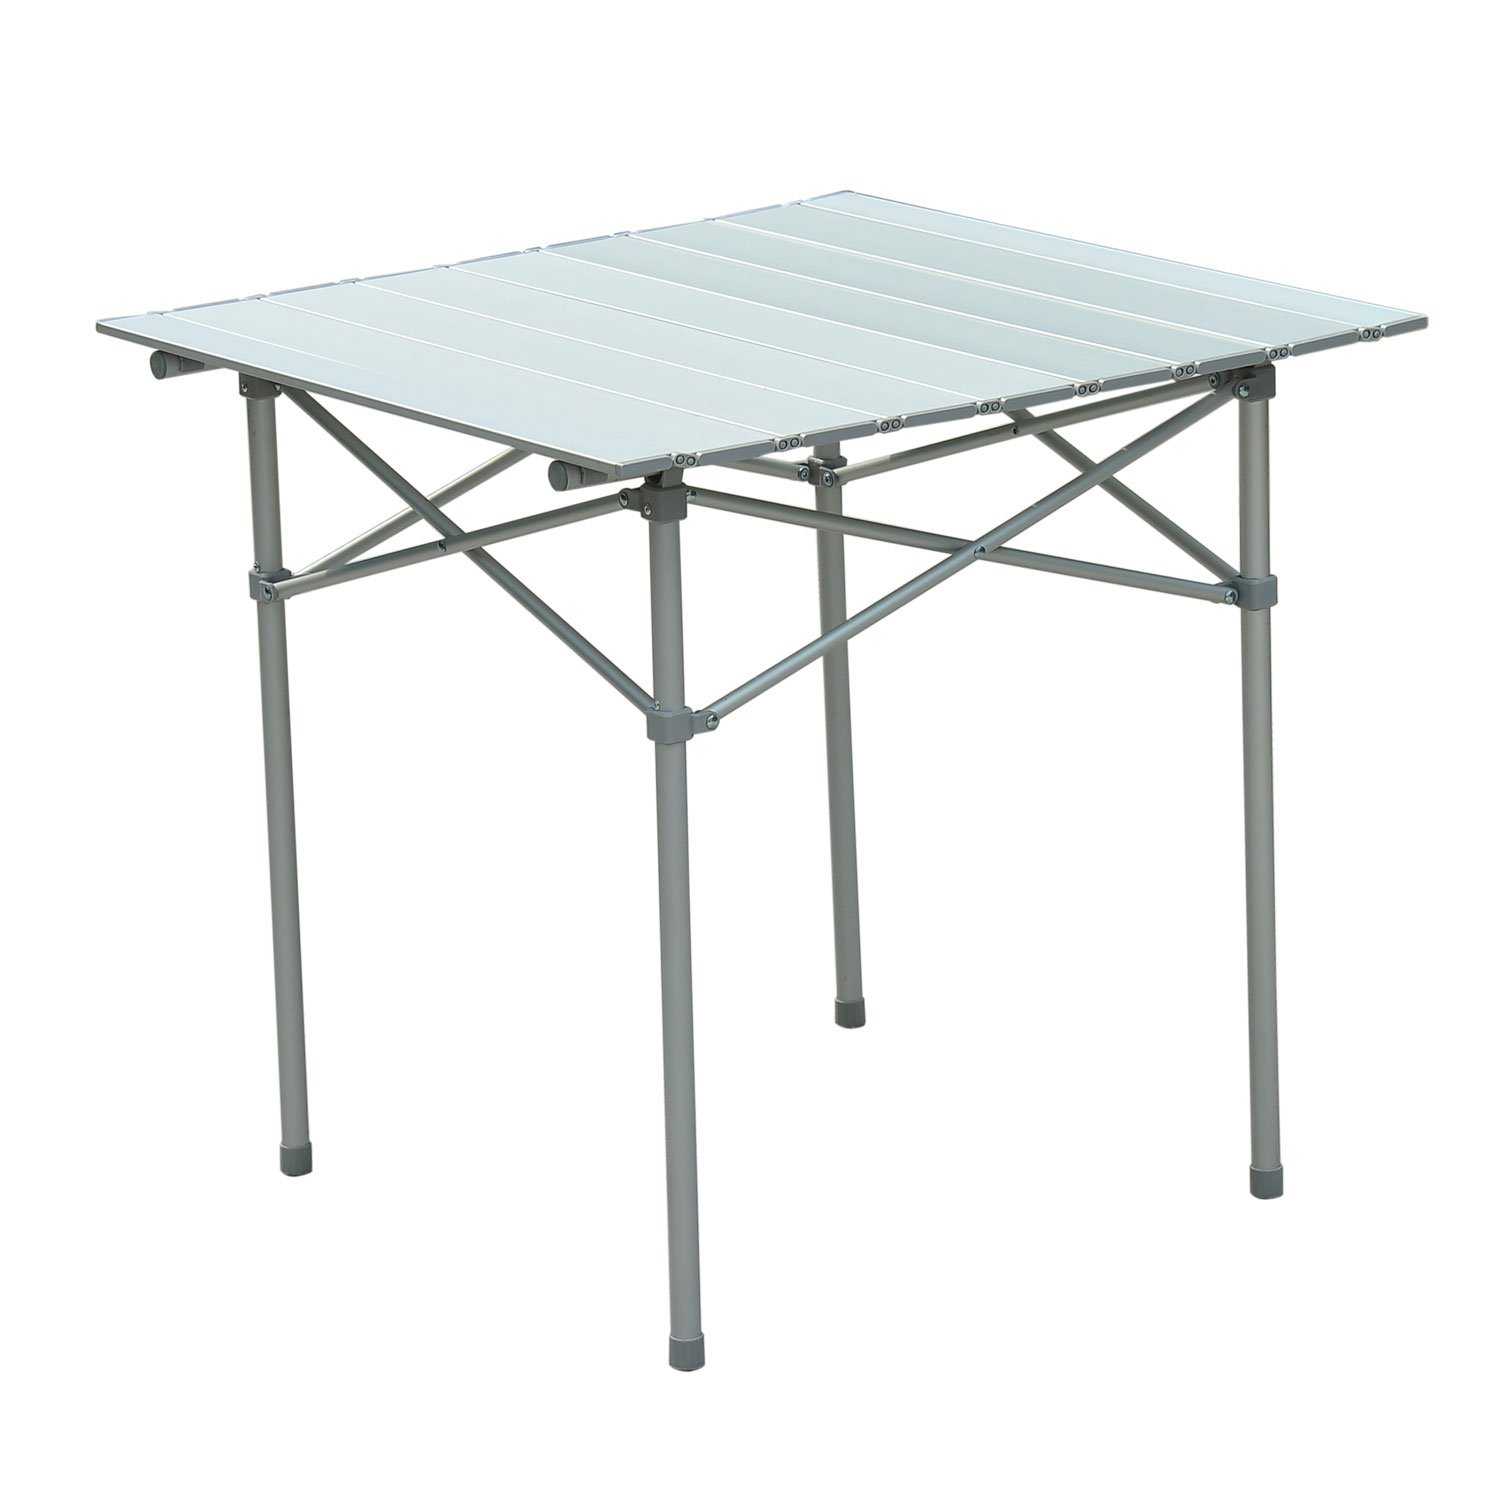 "Outsunny Roll Up Top Aluminum Camp Portable Camping Picnic Table w/ Carrying Bag - 28"" x 28"" - Silver at Sears.com"